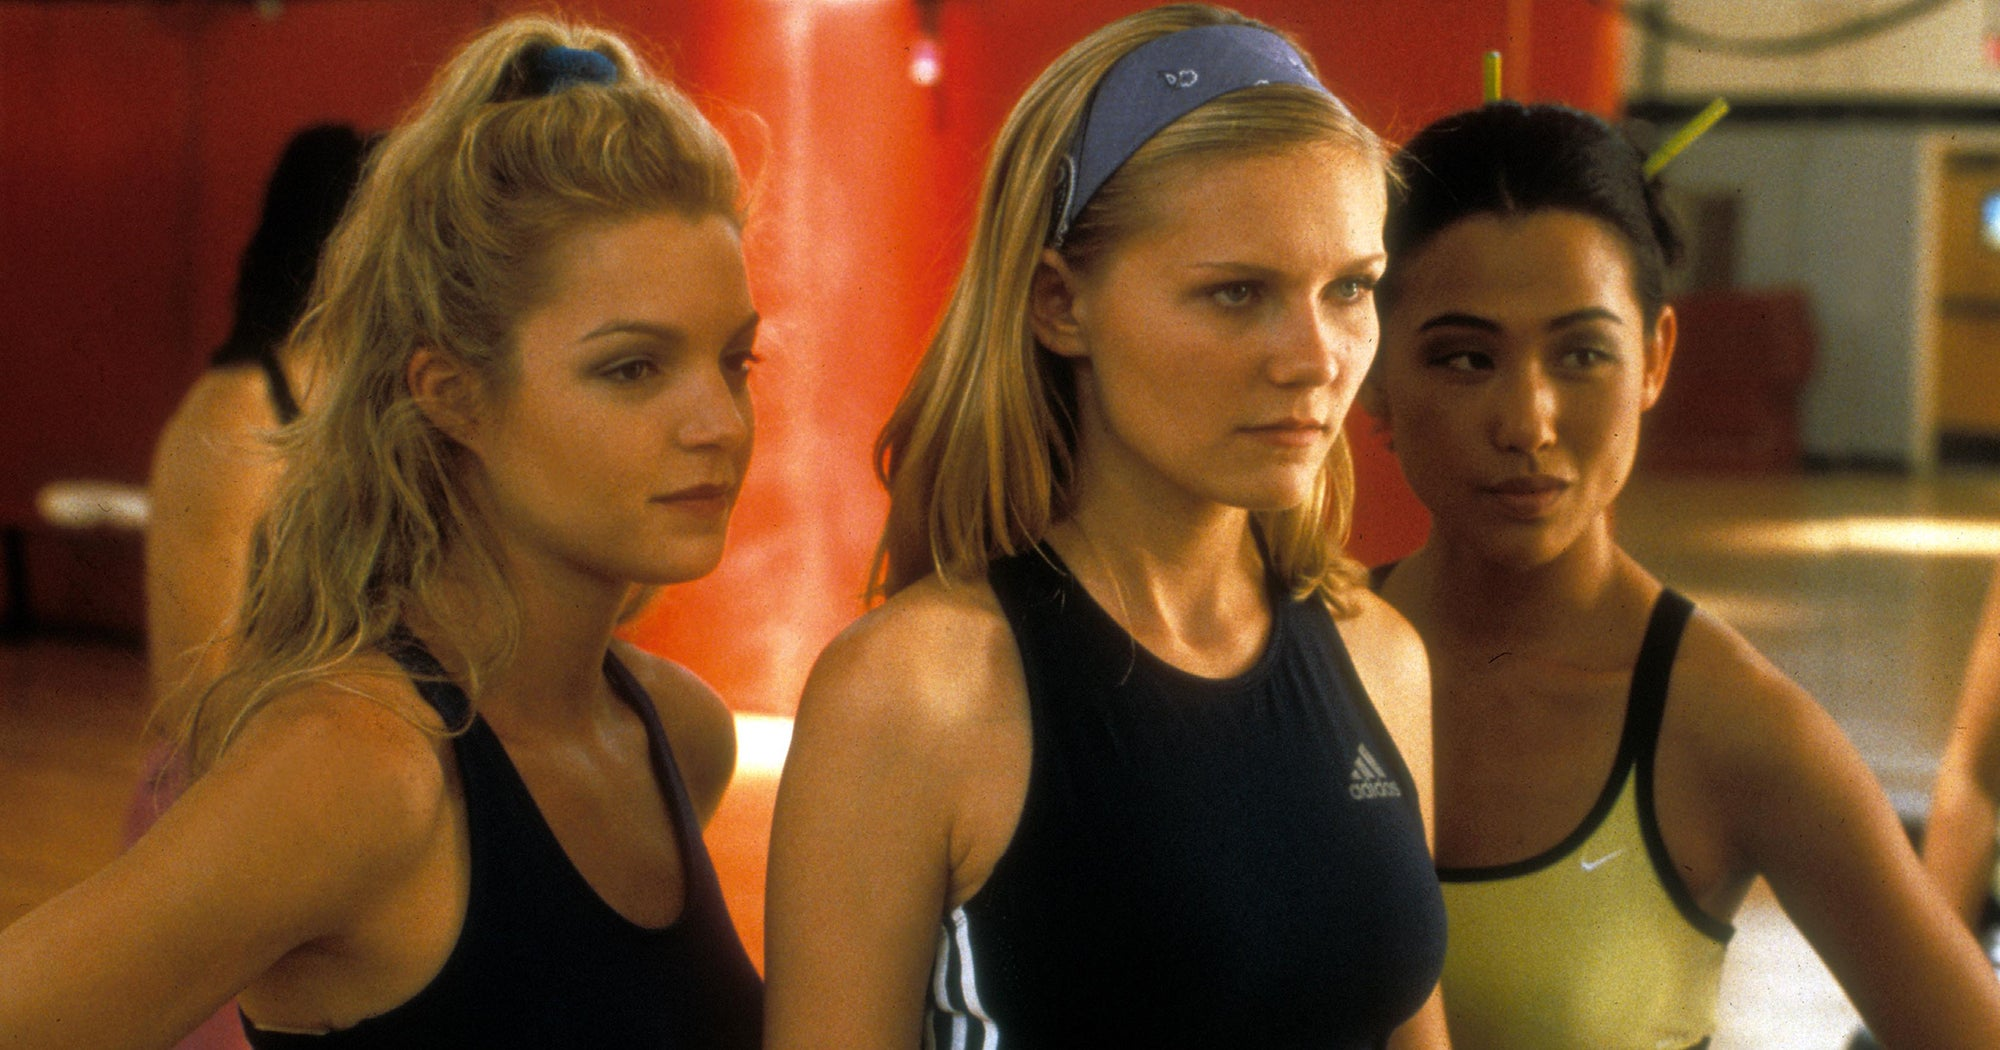 Bring It On Movie Anniversary: 6 Things You Never Knew